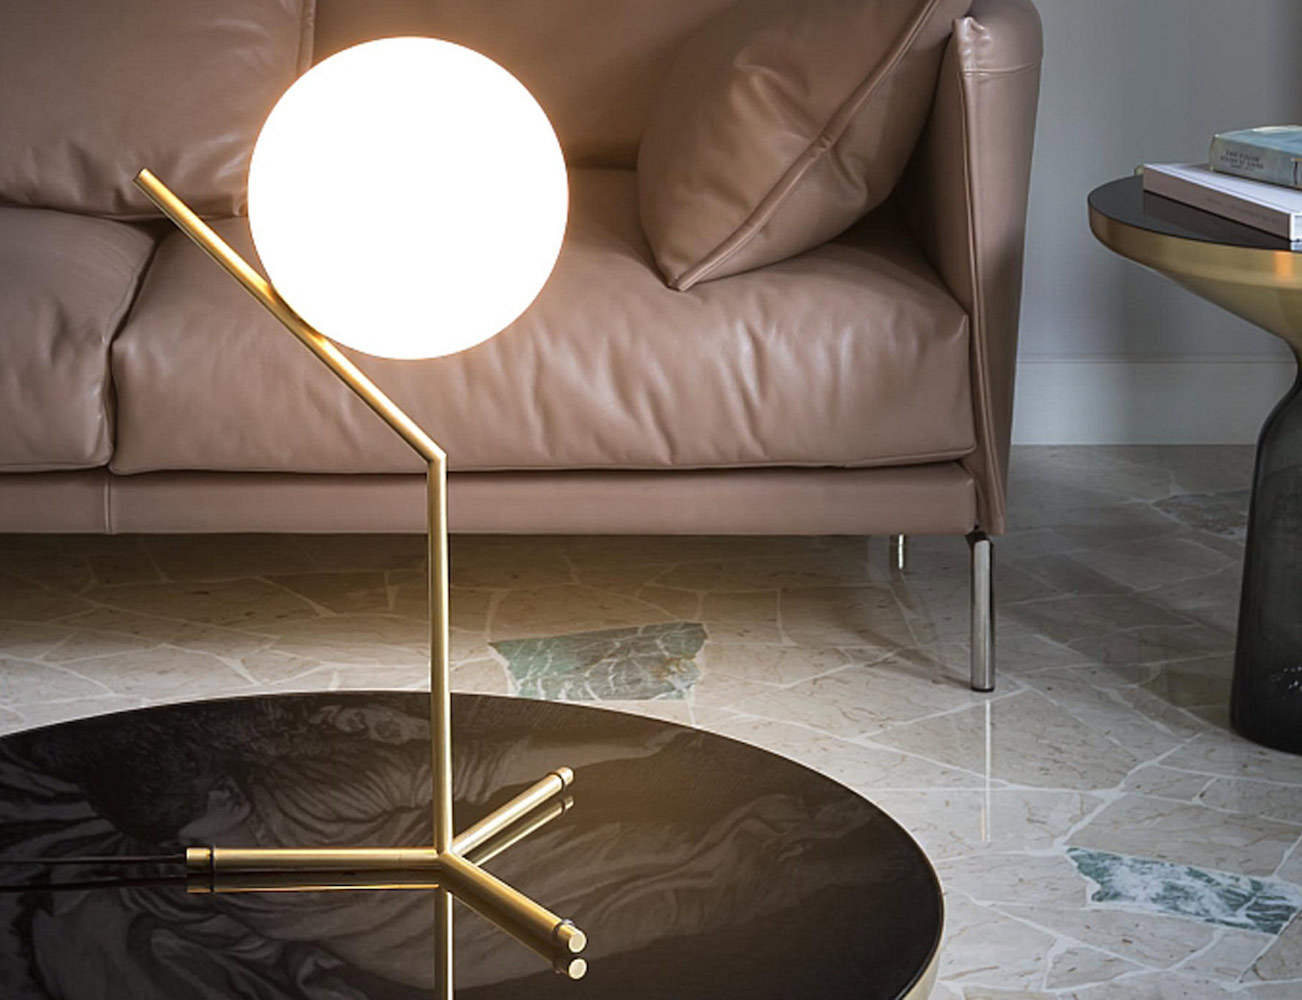 IC T1 Tall Table Lamp by Flos – Provides Diffused Lighting